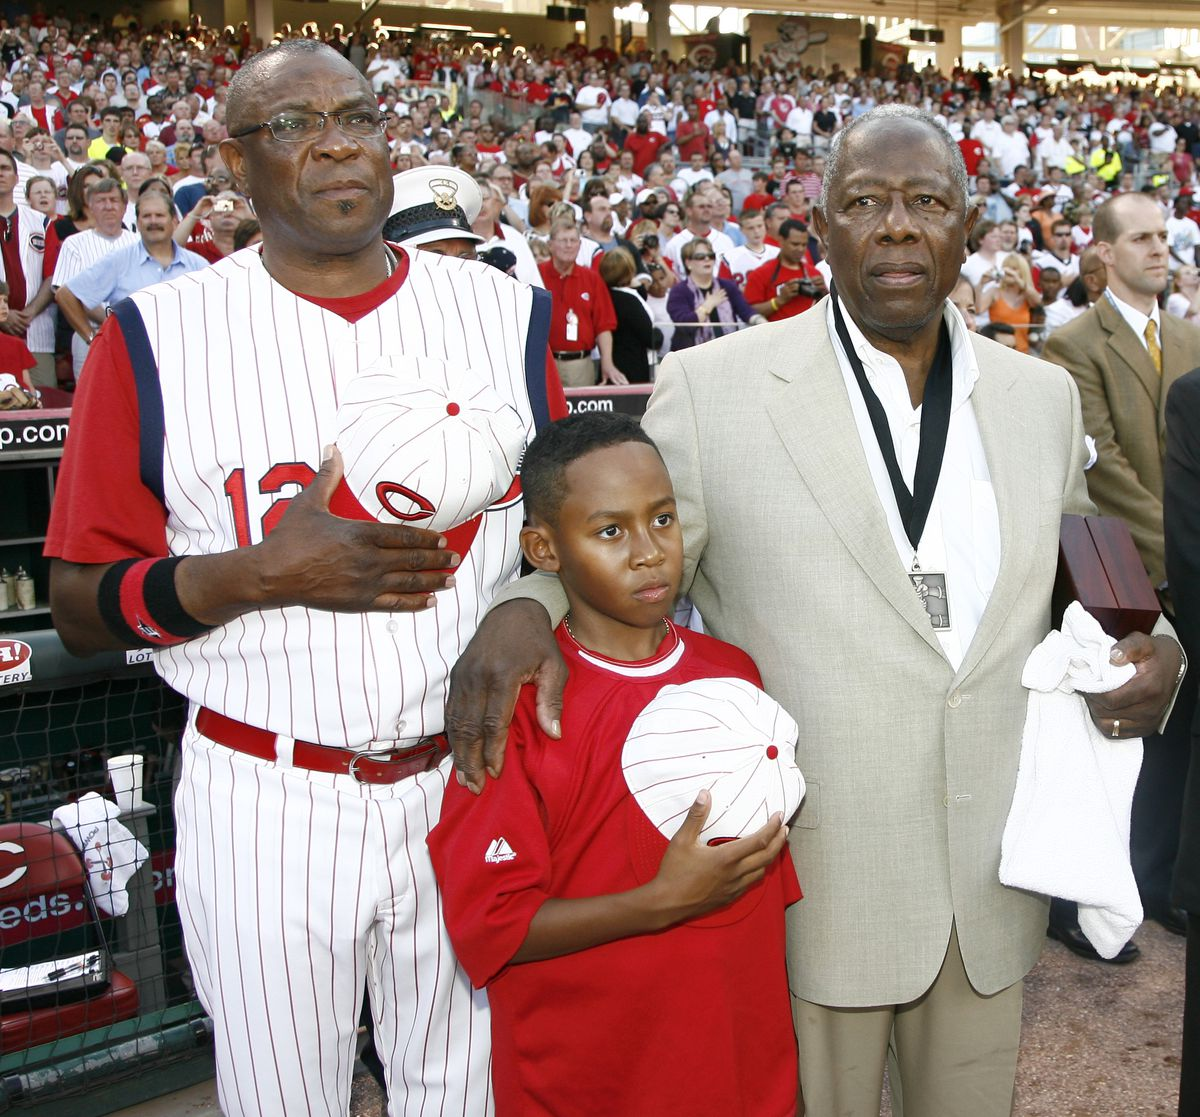 In this 2009 file photo, Reds manager Dusty Baker, left, stands with his son Darren Baker, center, and baseball legend and close friend Hank Aaron, right, as the national anthem plays at Great American Ball Park in Cincinnati.